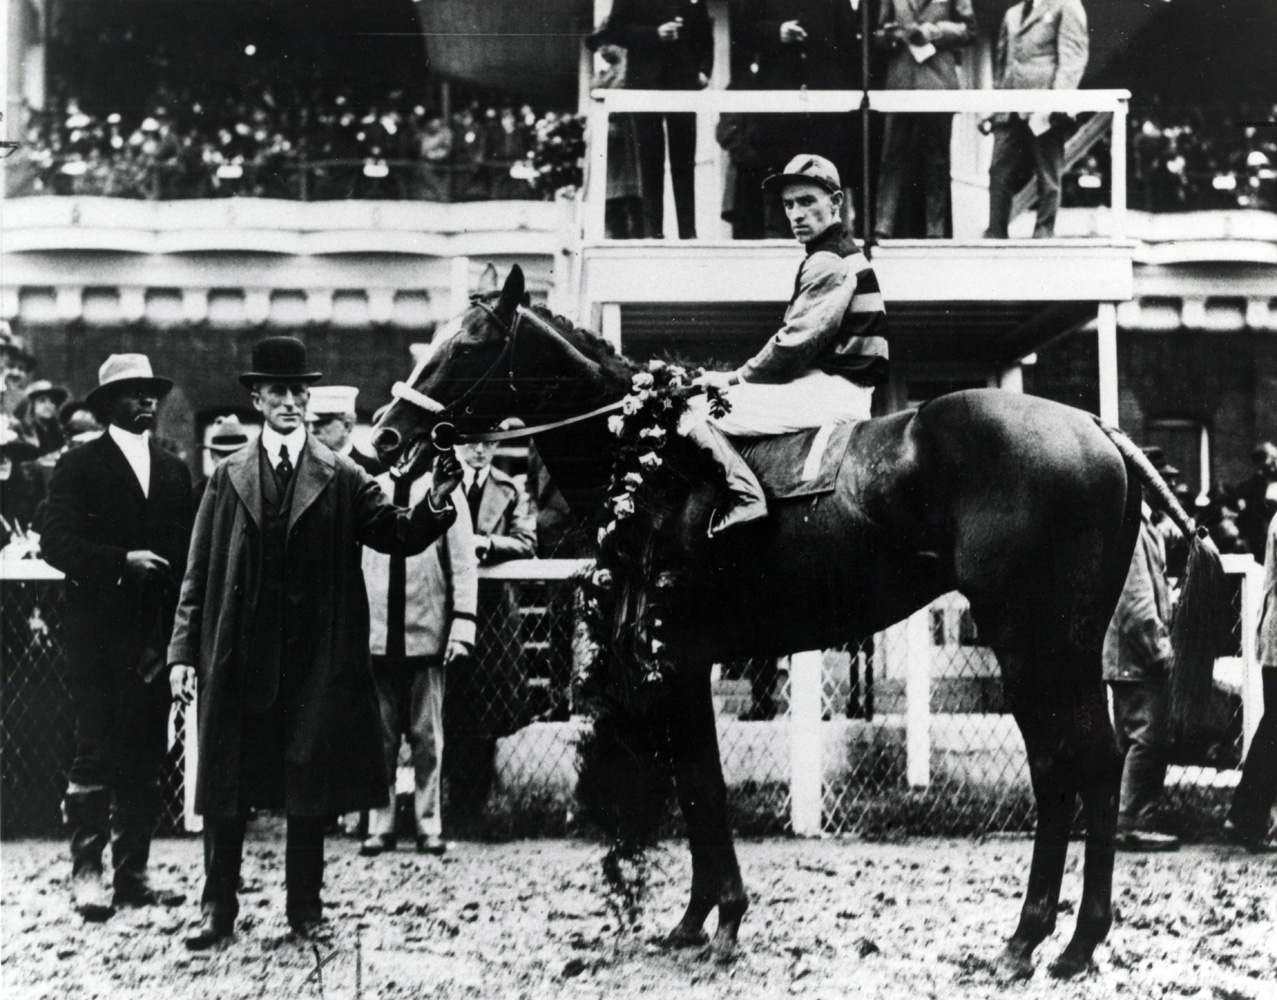 John Loftus and Sir Barton in the winner's circle for the 1919 Kentucky Derby (Churchill Downs Inc./Kinetic Corp. /Museum Collection)